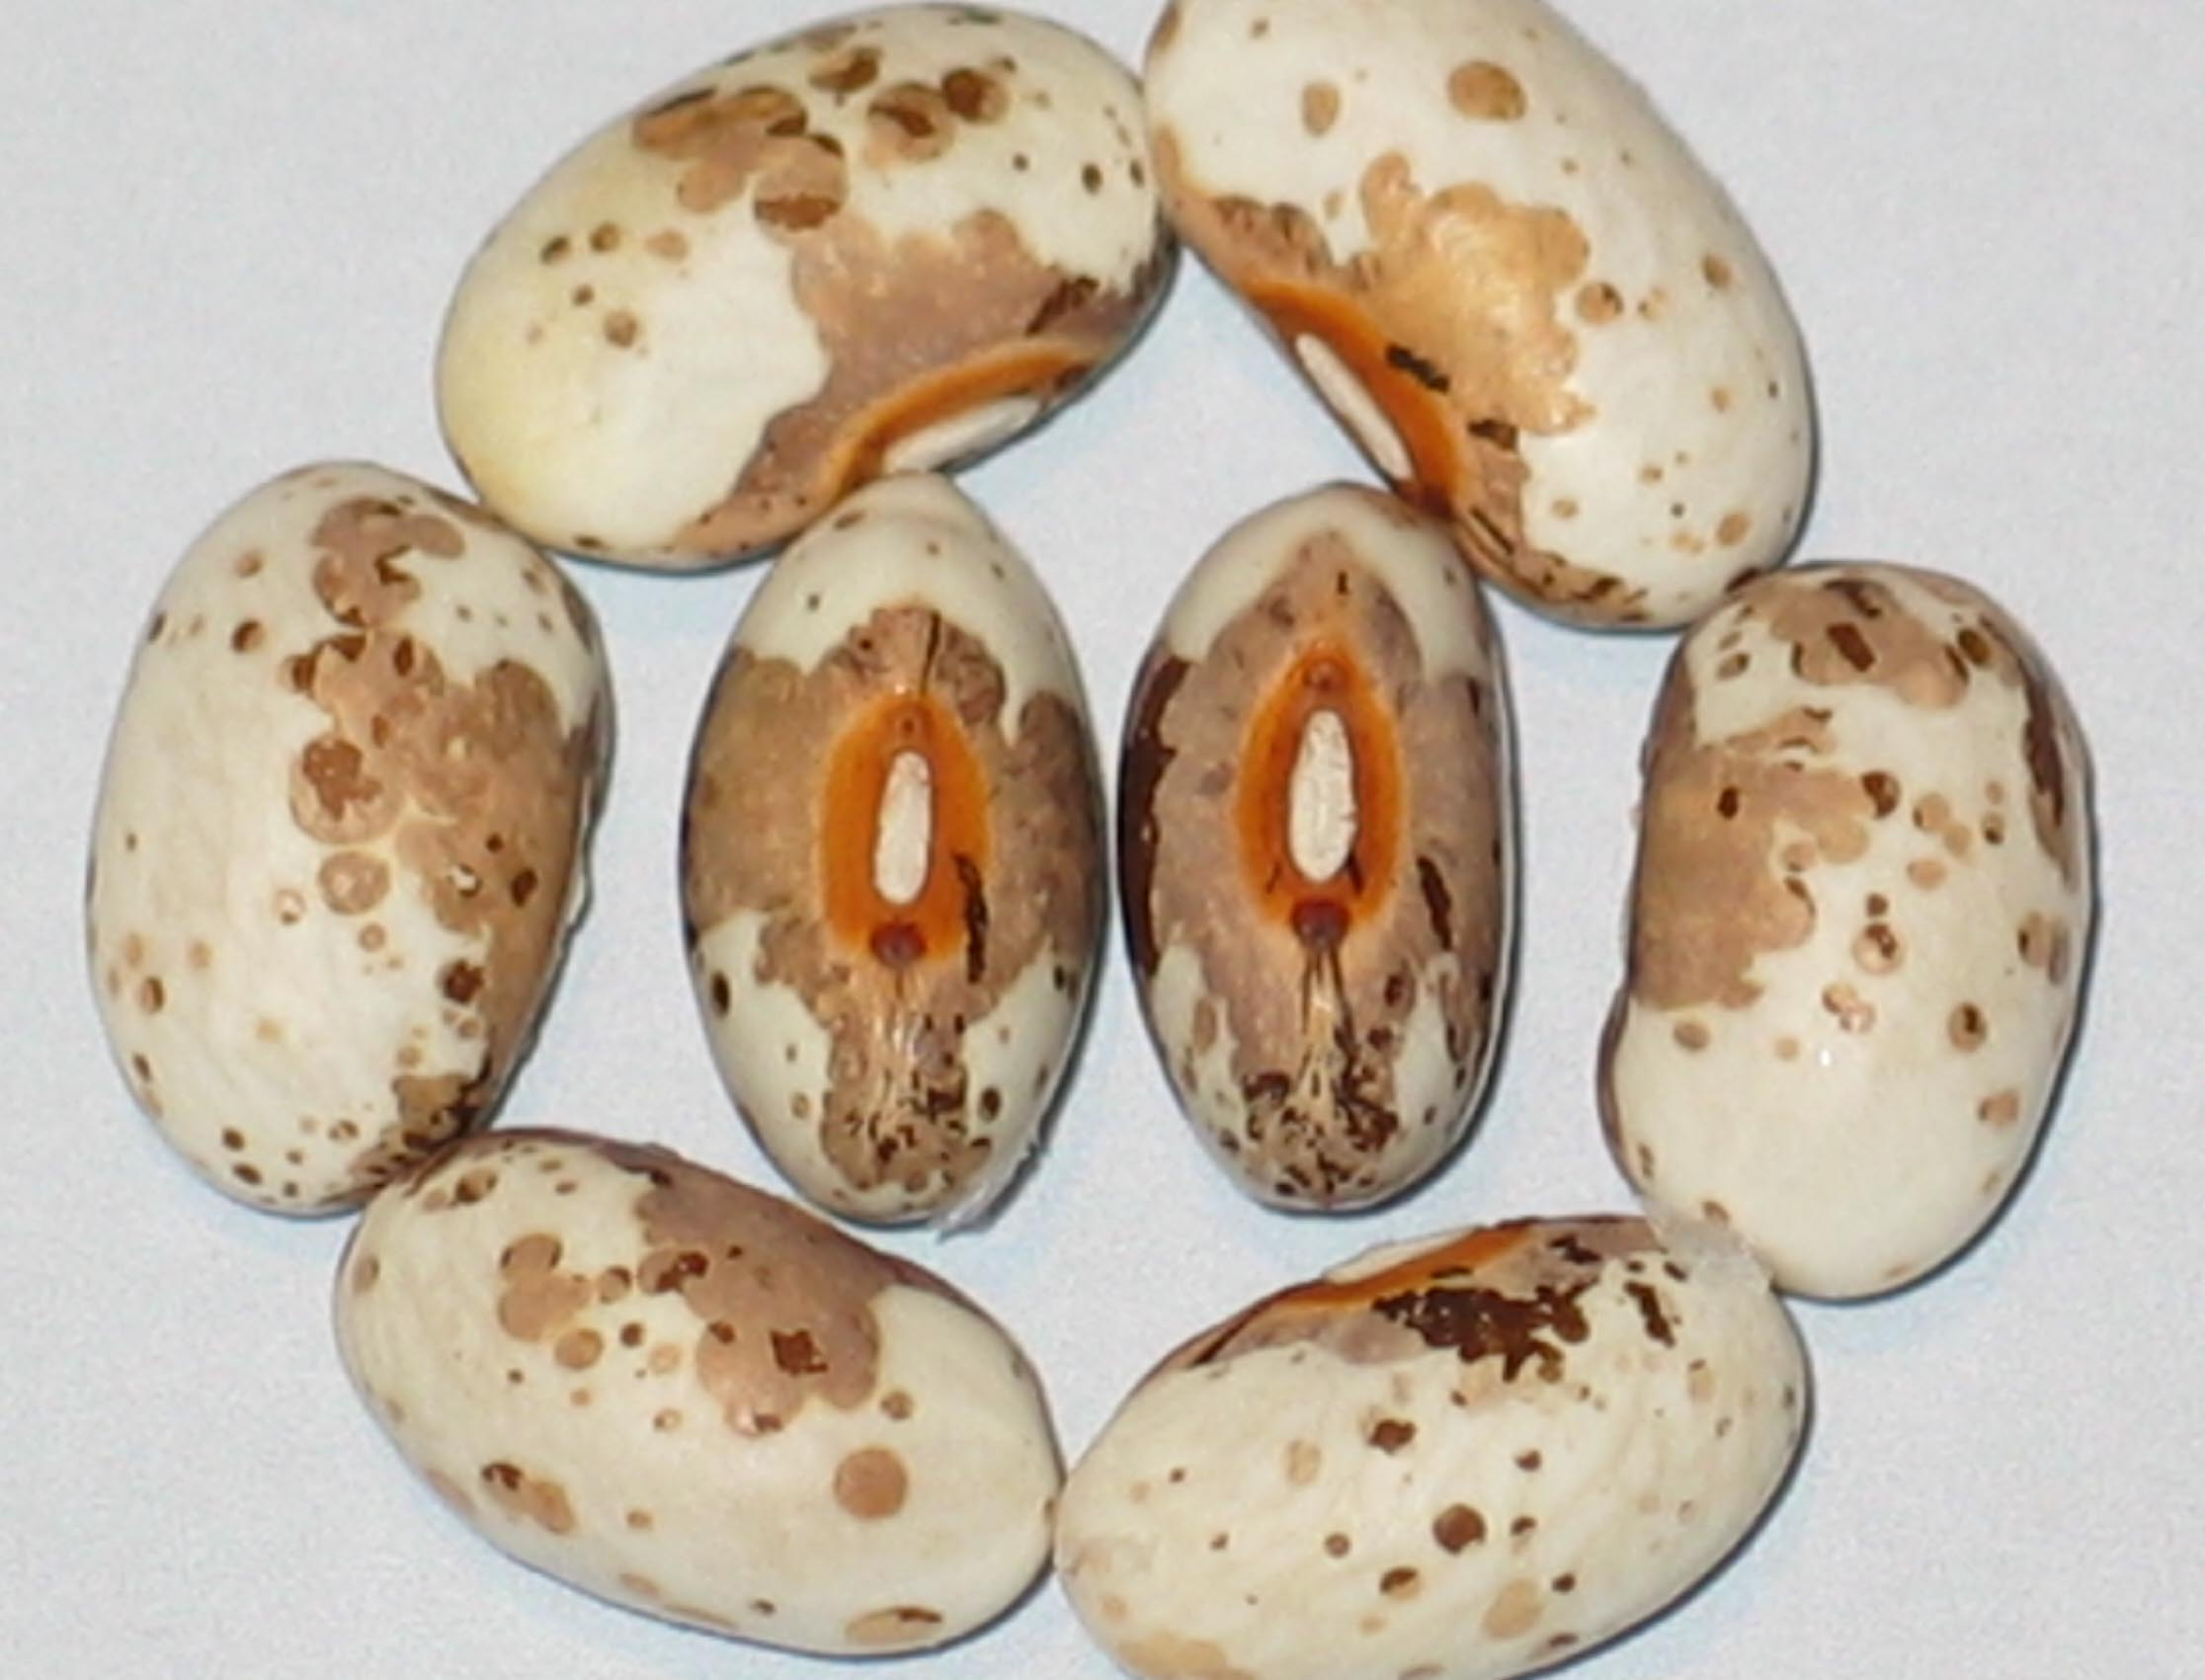 image of Koronis Three Islands beans